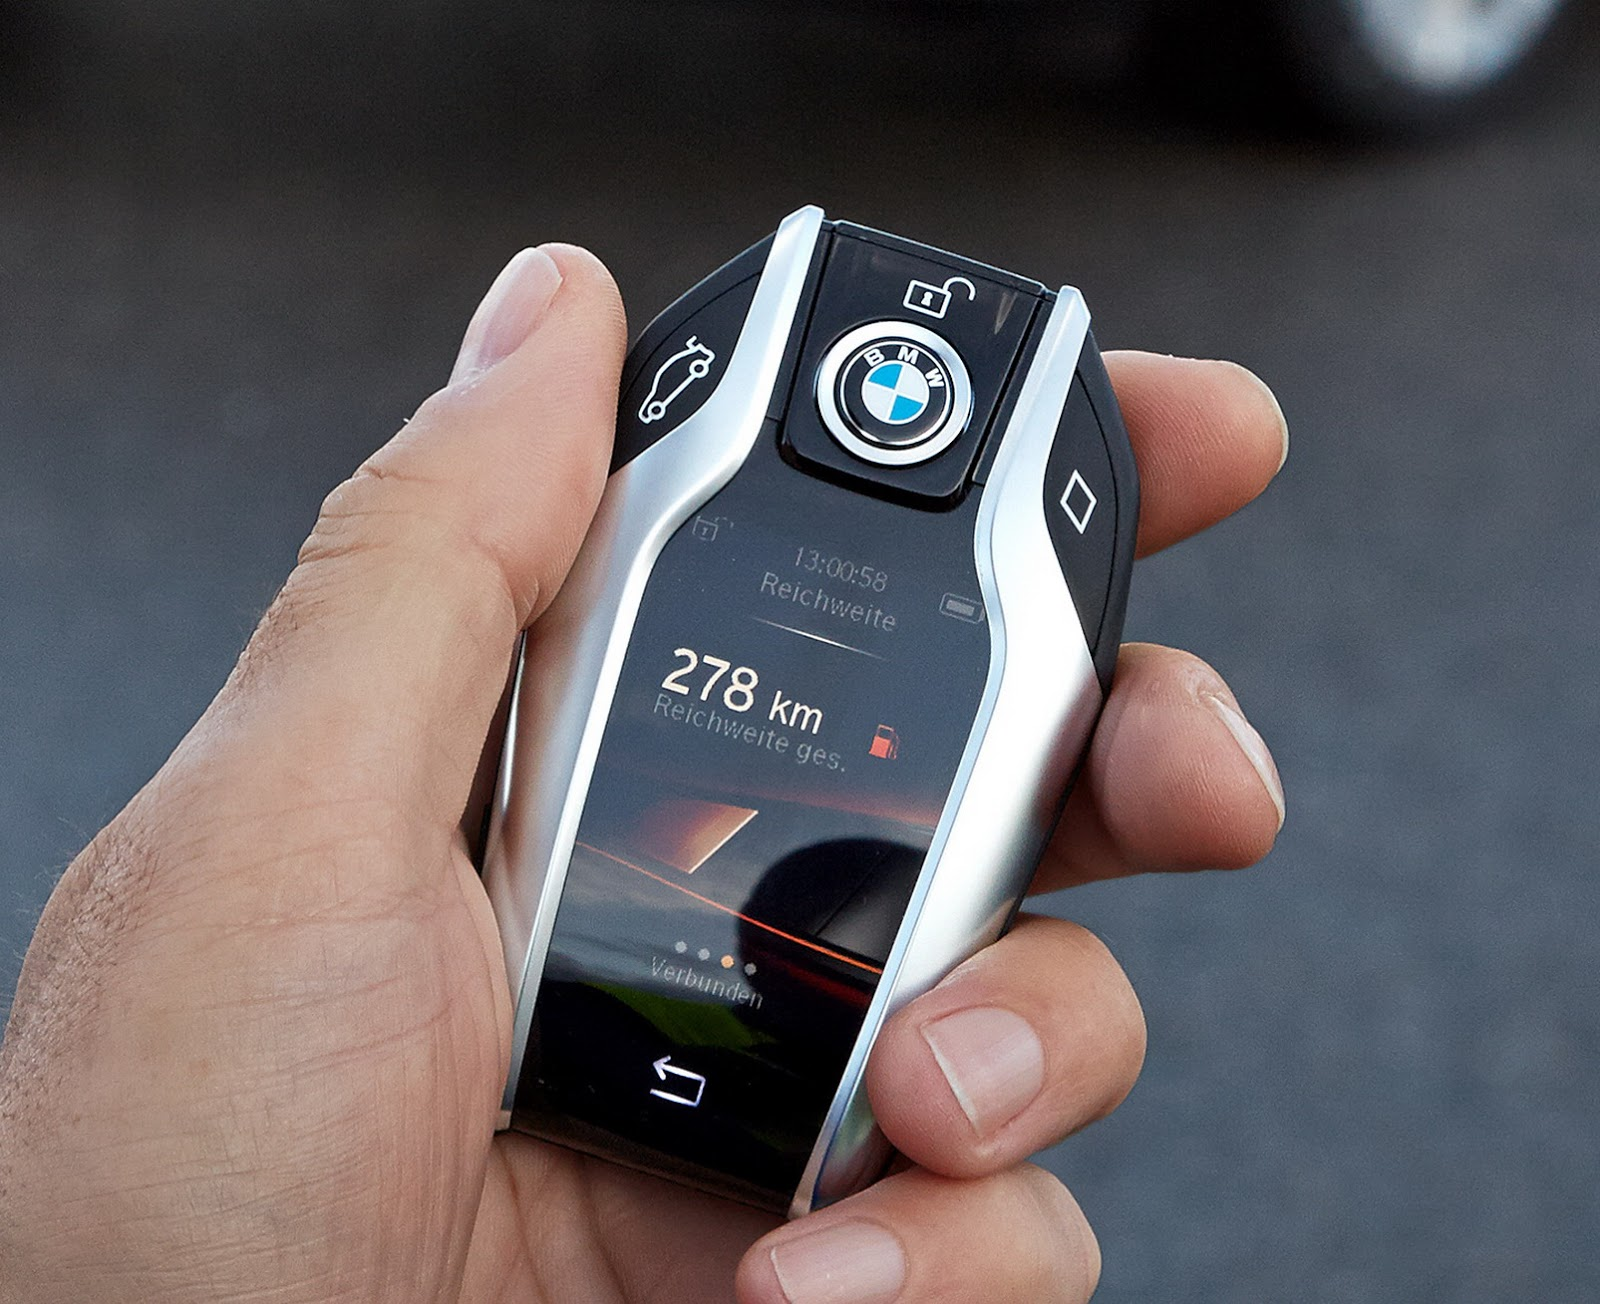 new bmw 7 series has a super cool key fob with a digital. Black Bedroom Furniture Sets. Home Design Ideas